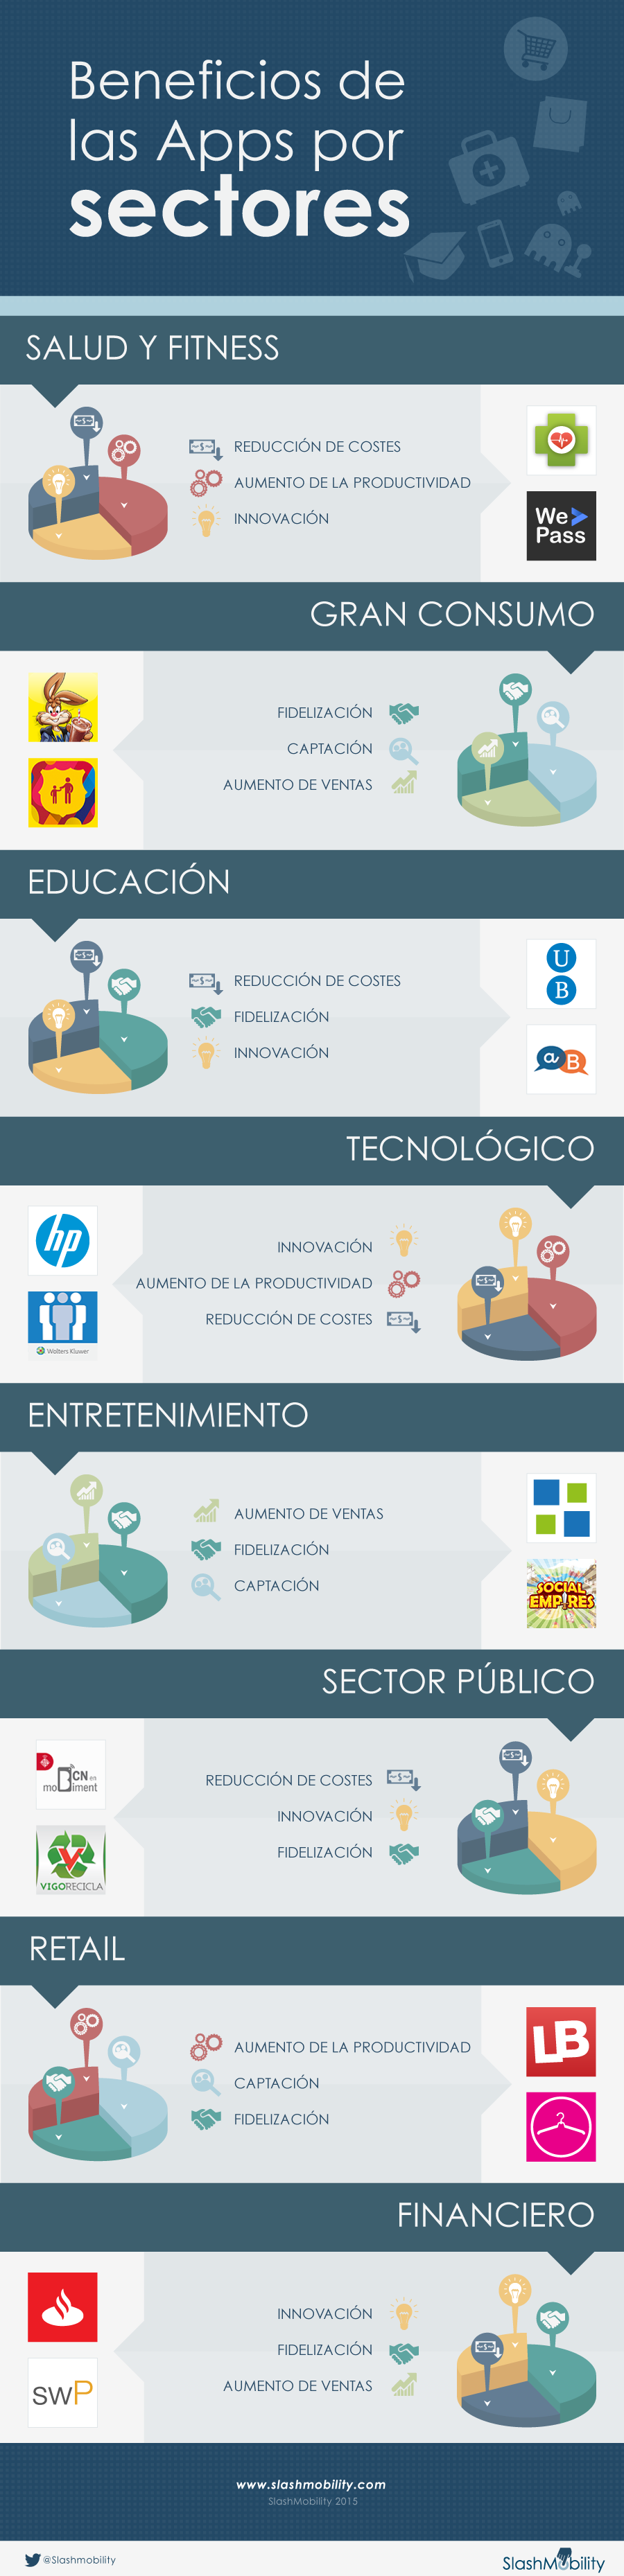 infografia-categoria-apps